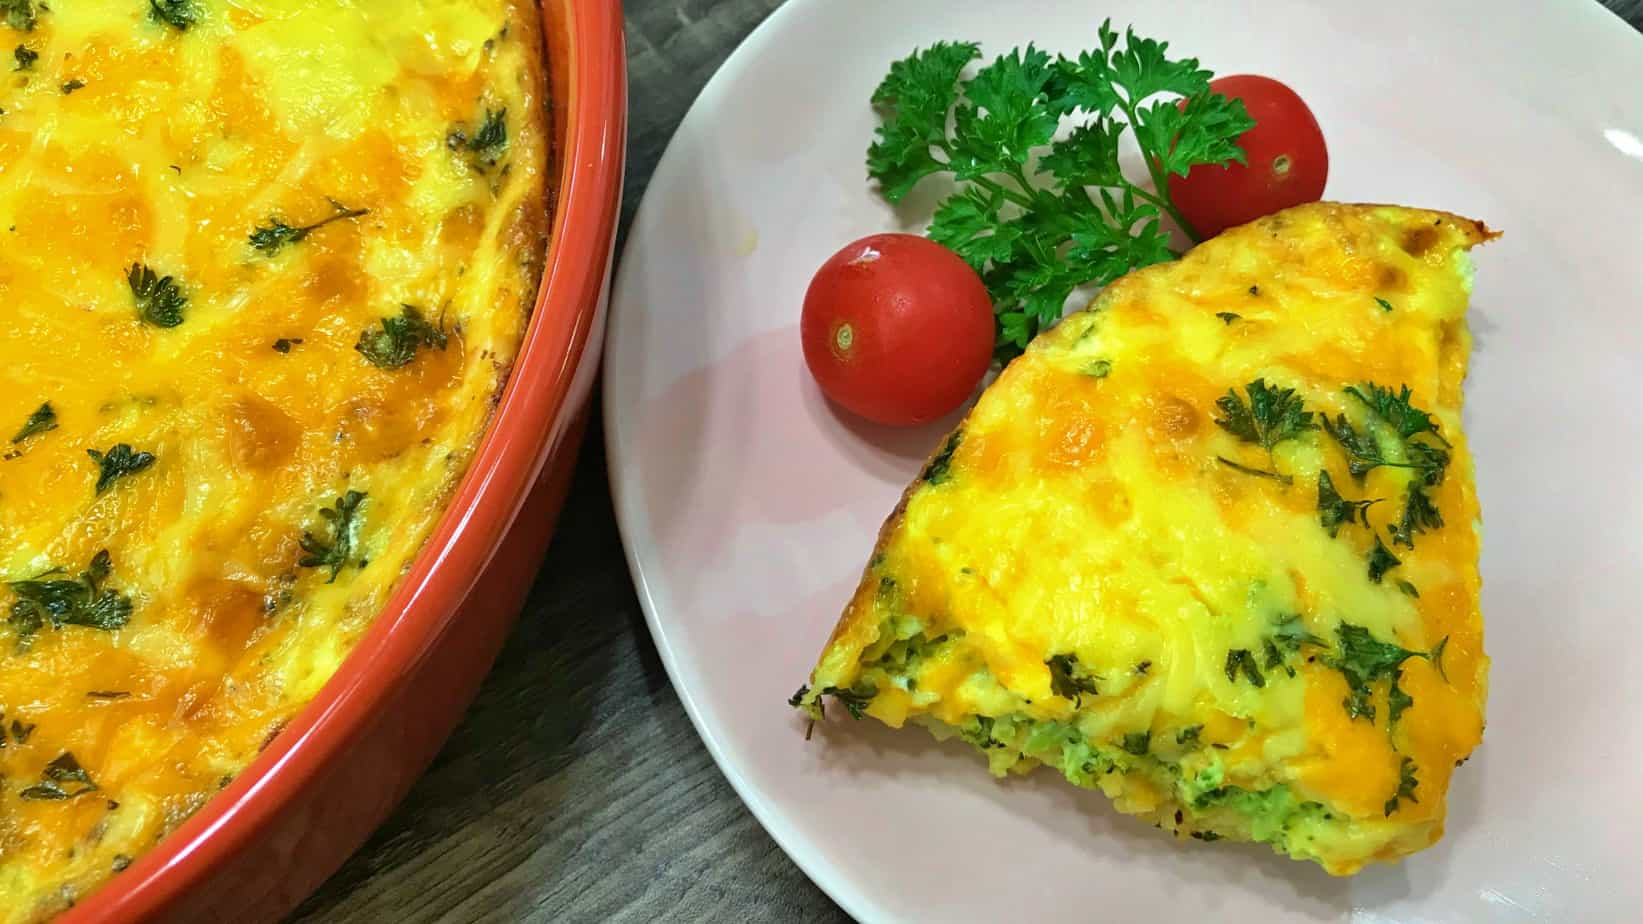 Keto Broccoli Cheddar Quiche Recipe